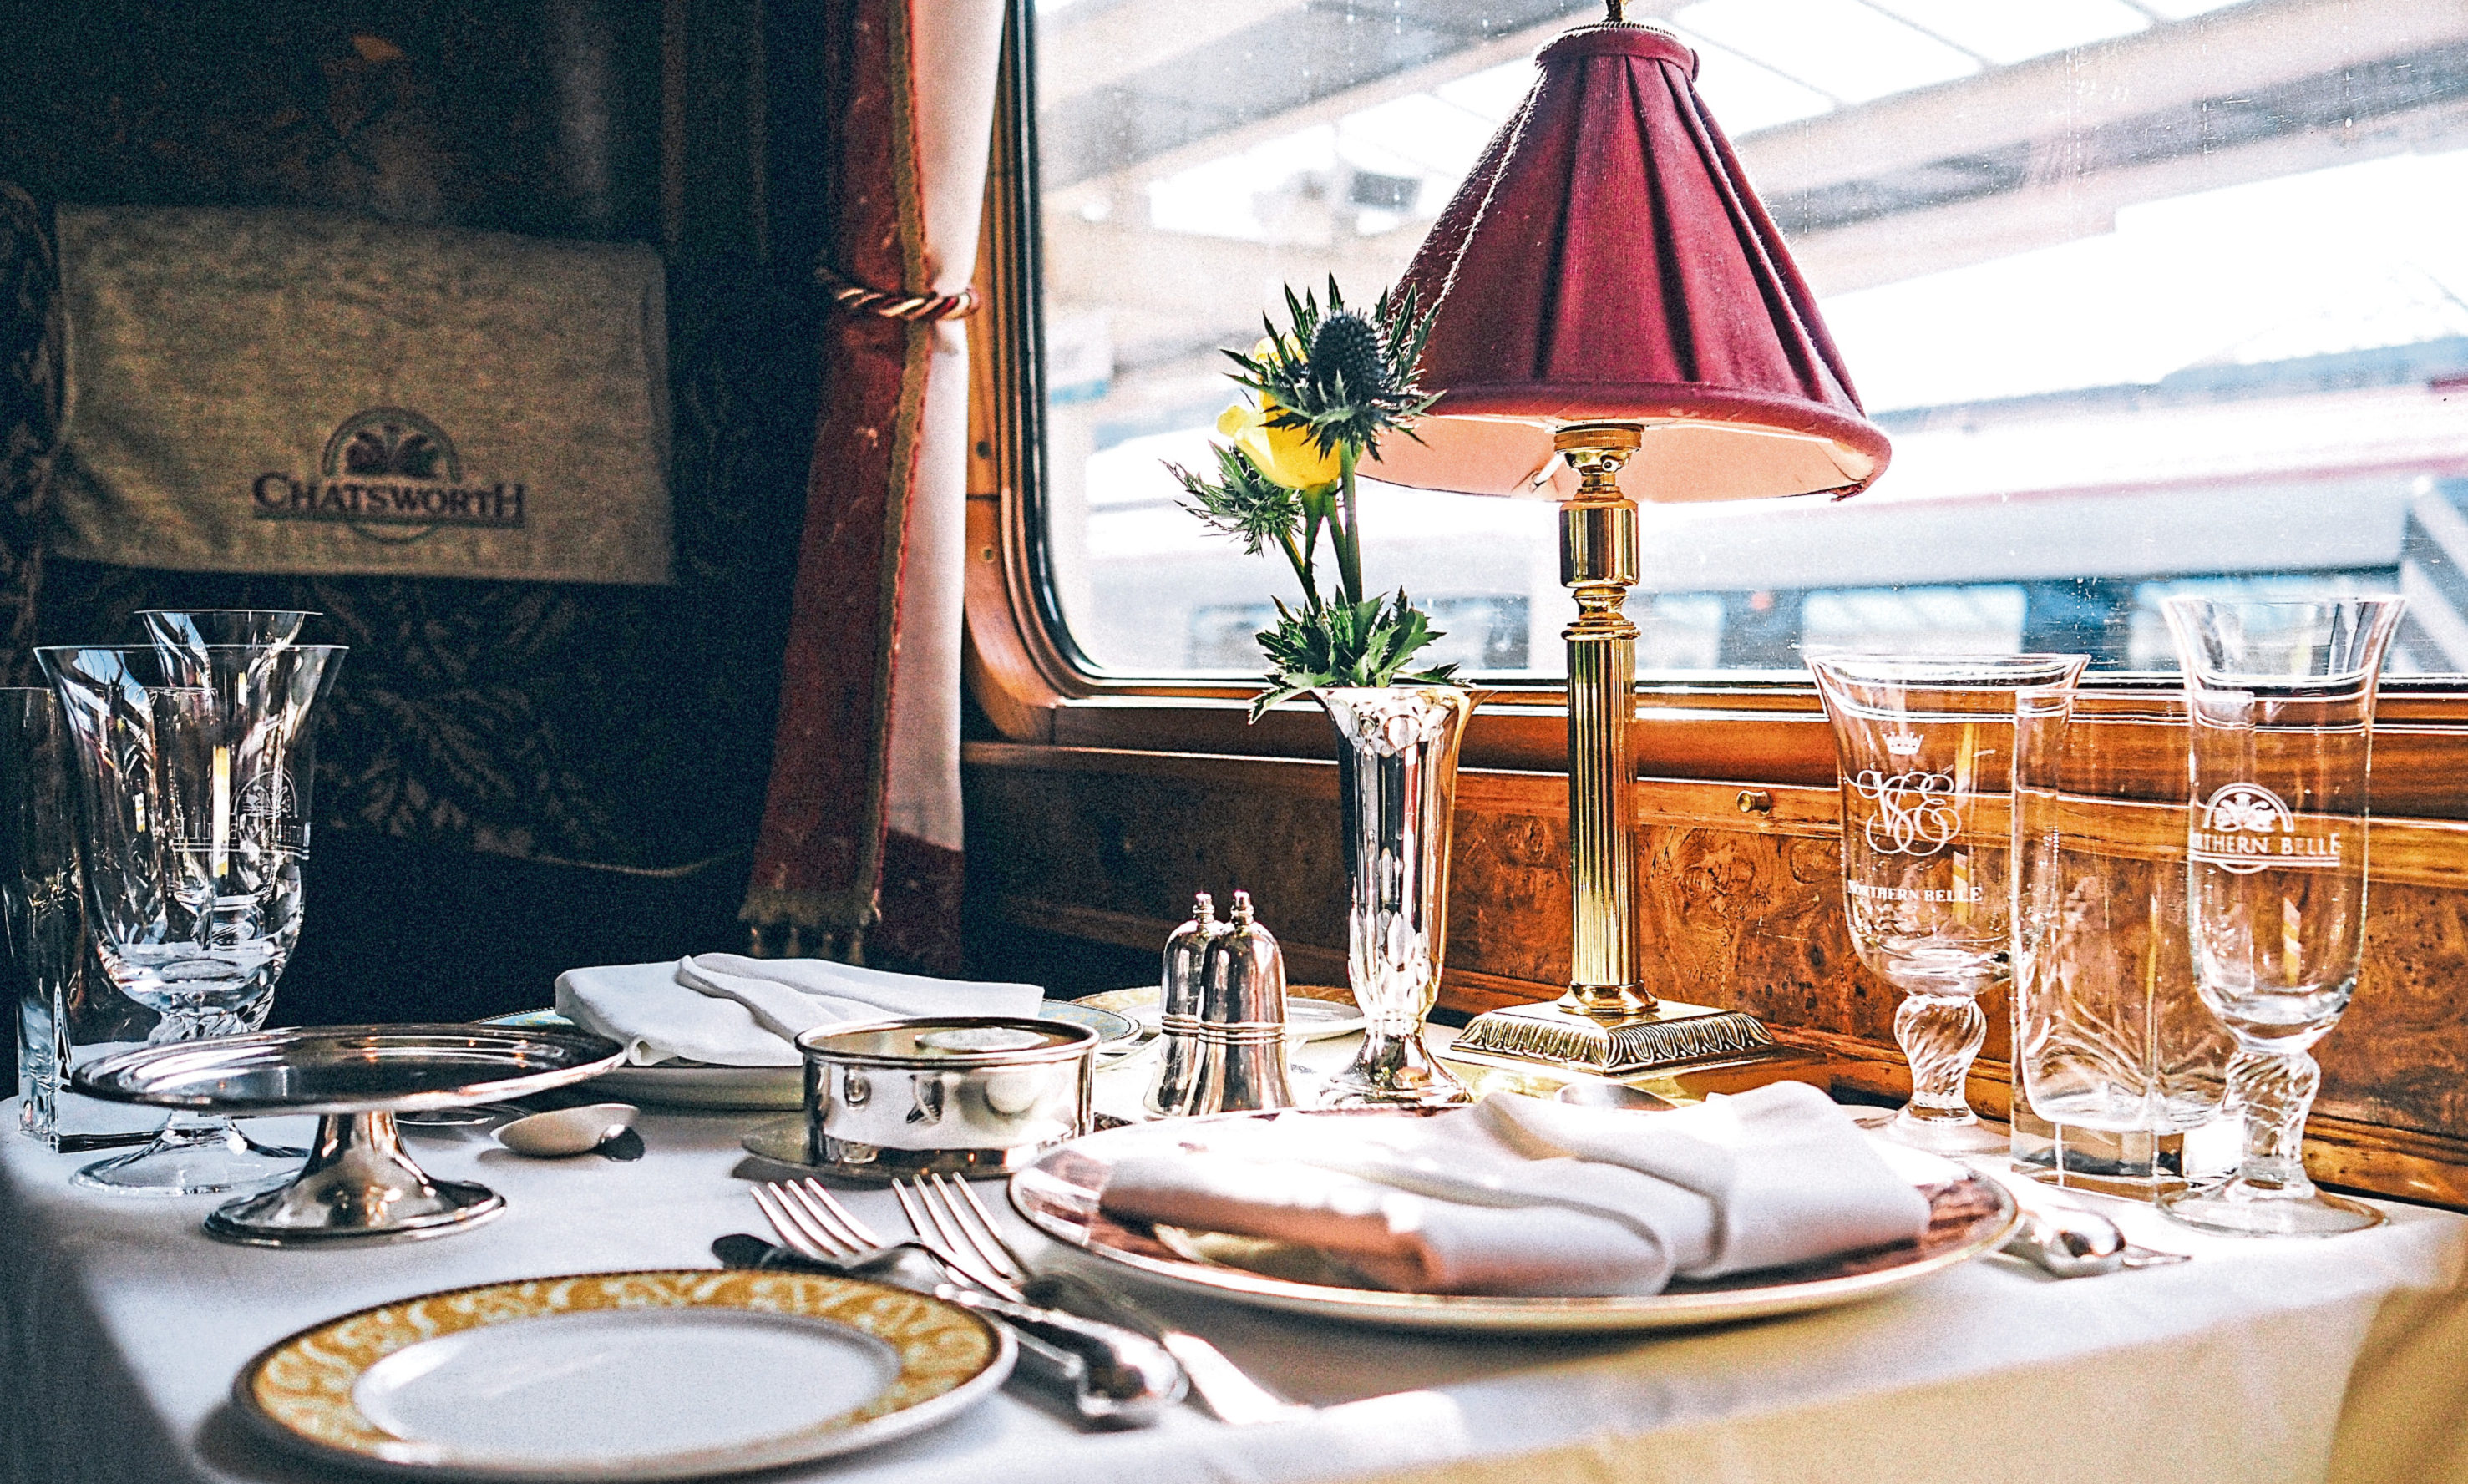 A gourmet dining experience awaits on the Northern Belle.